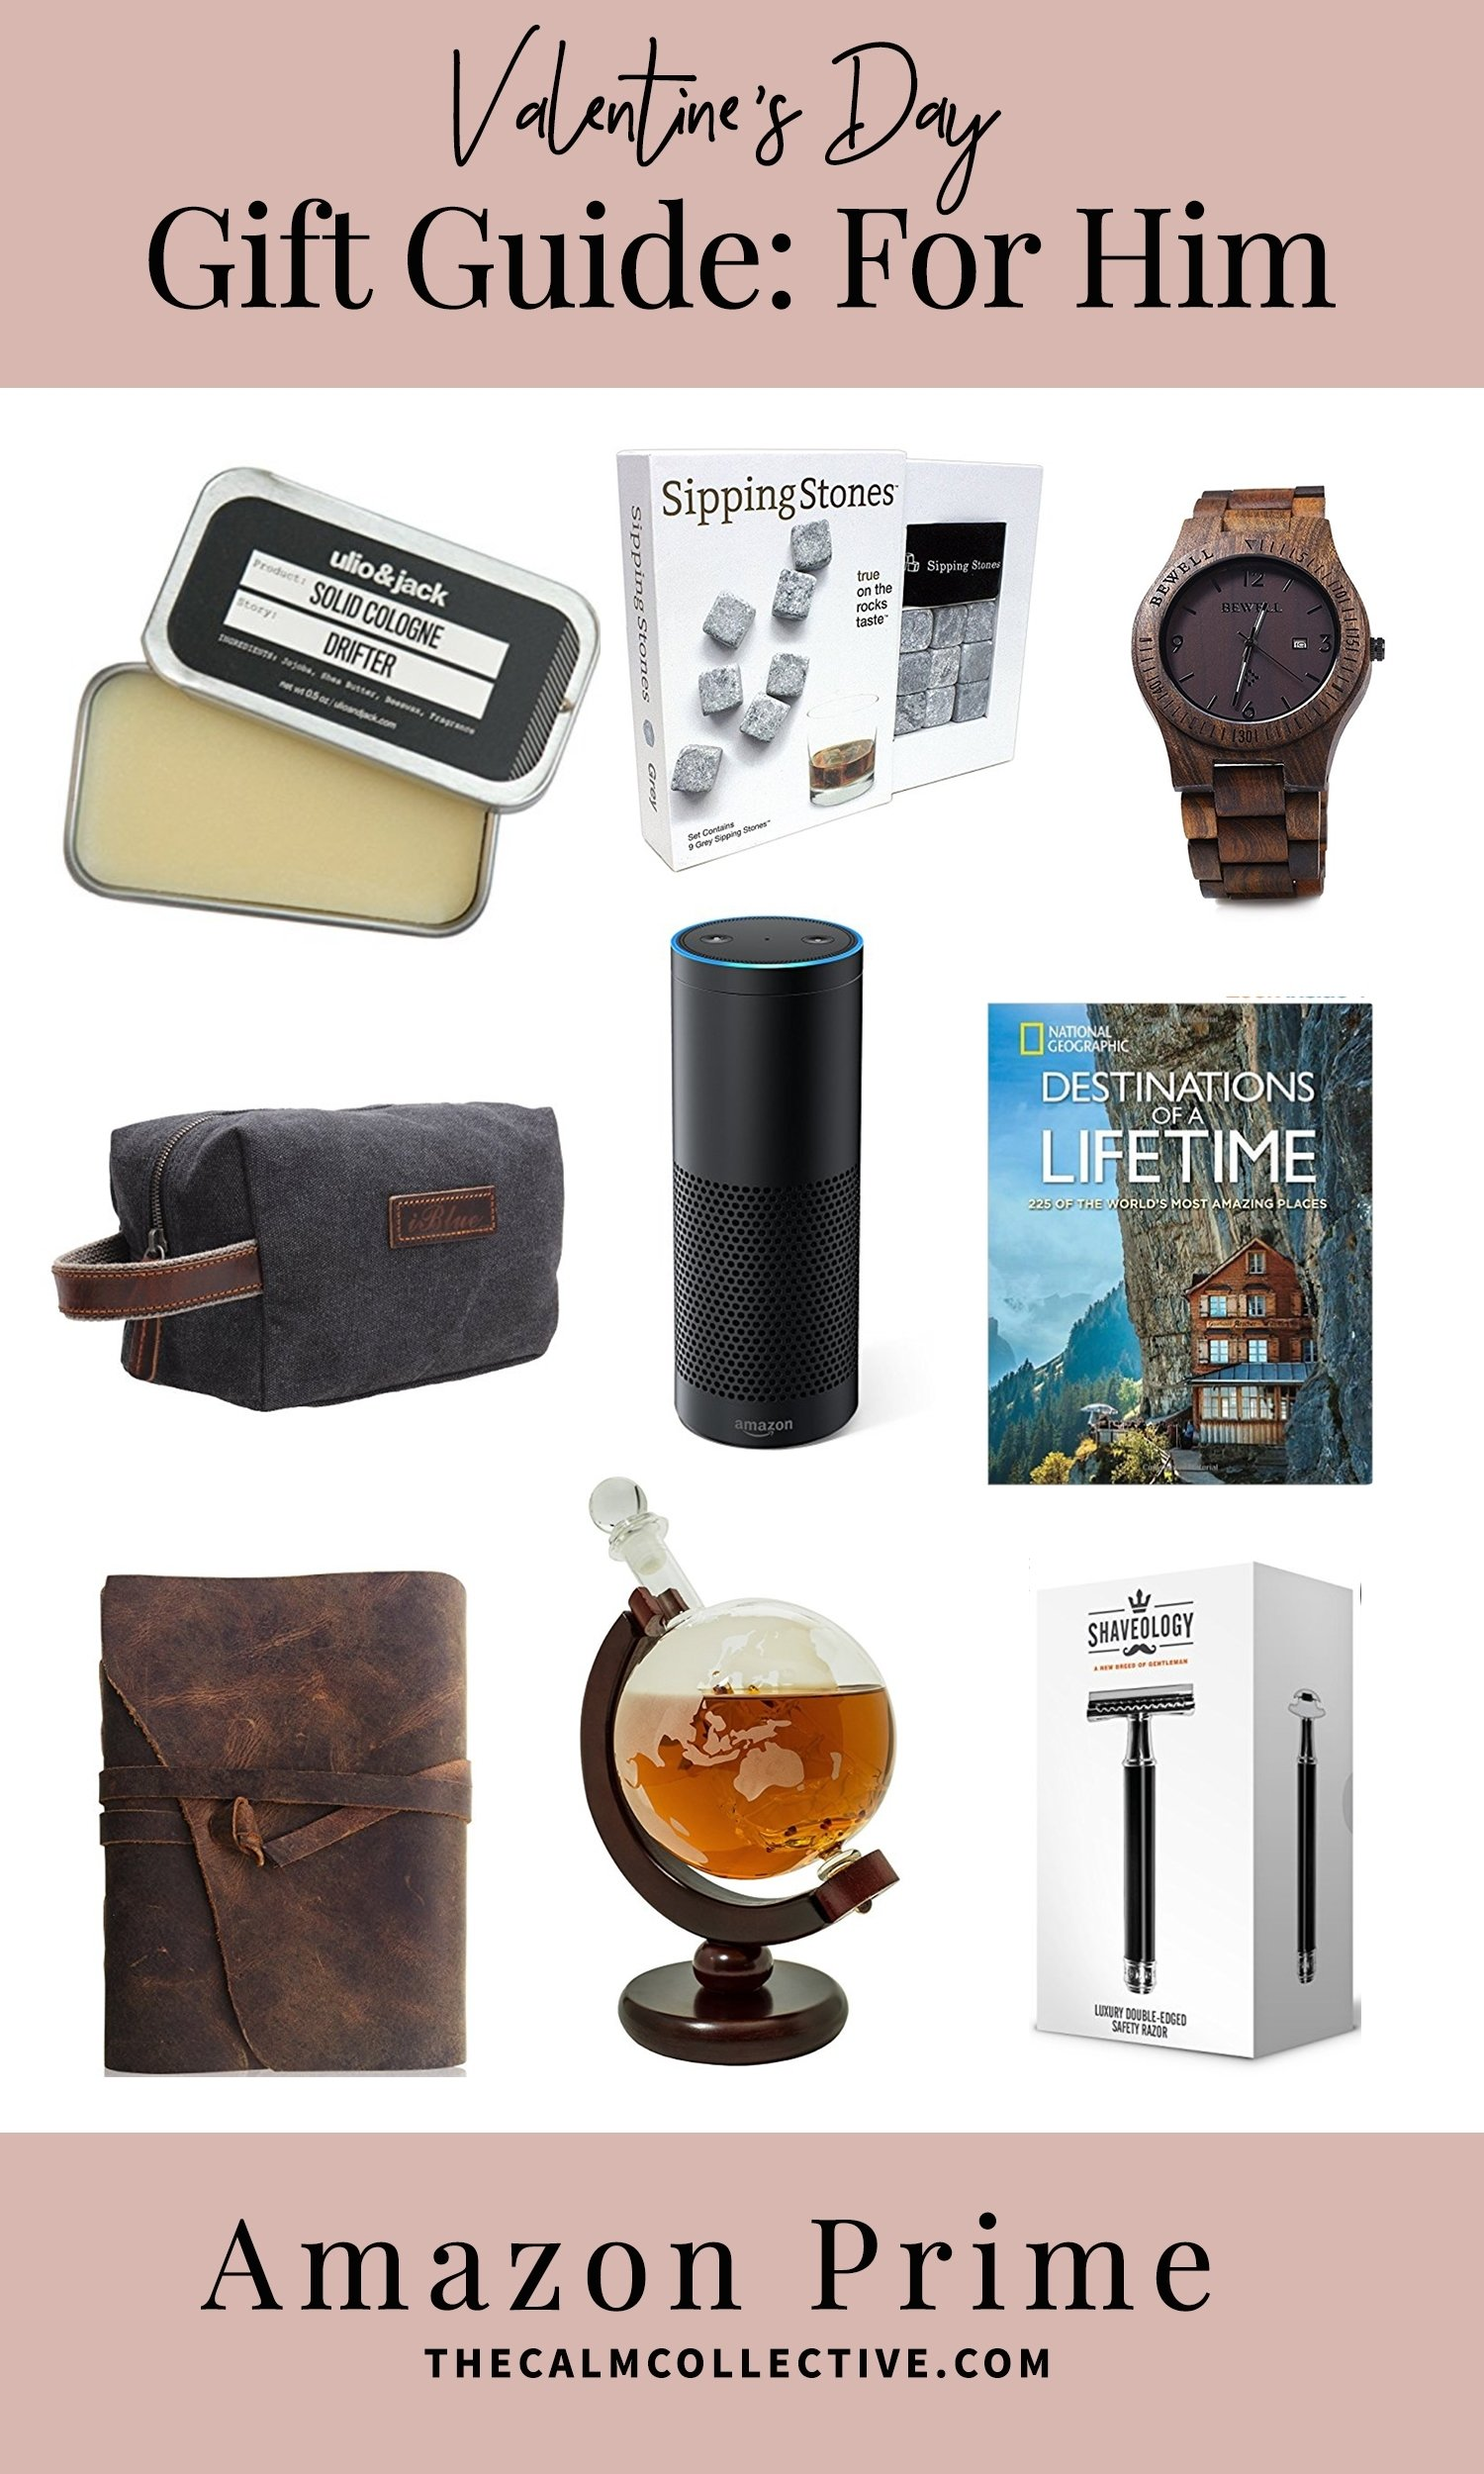 10 Ideal Amazon Gift Ideas For Her valentines day gift guide for him amazon prime 2020